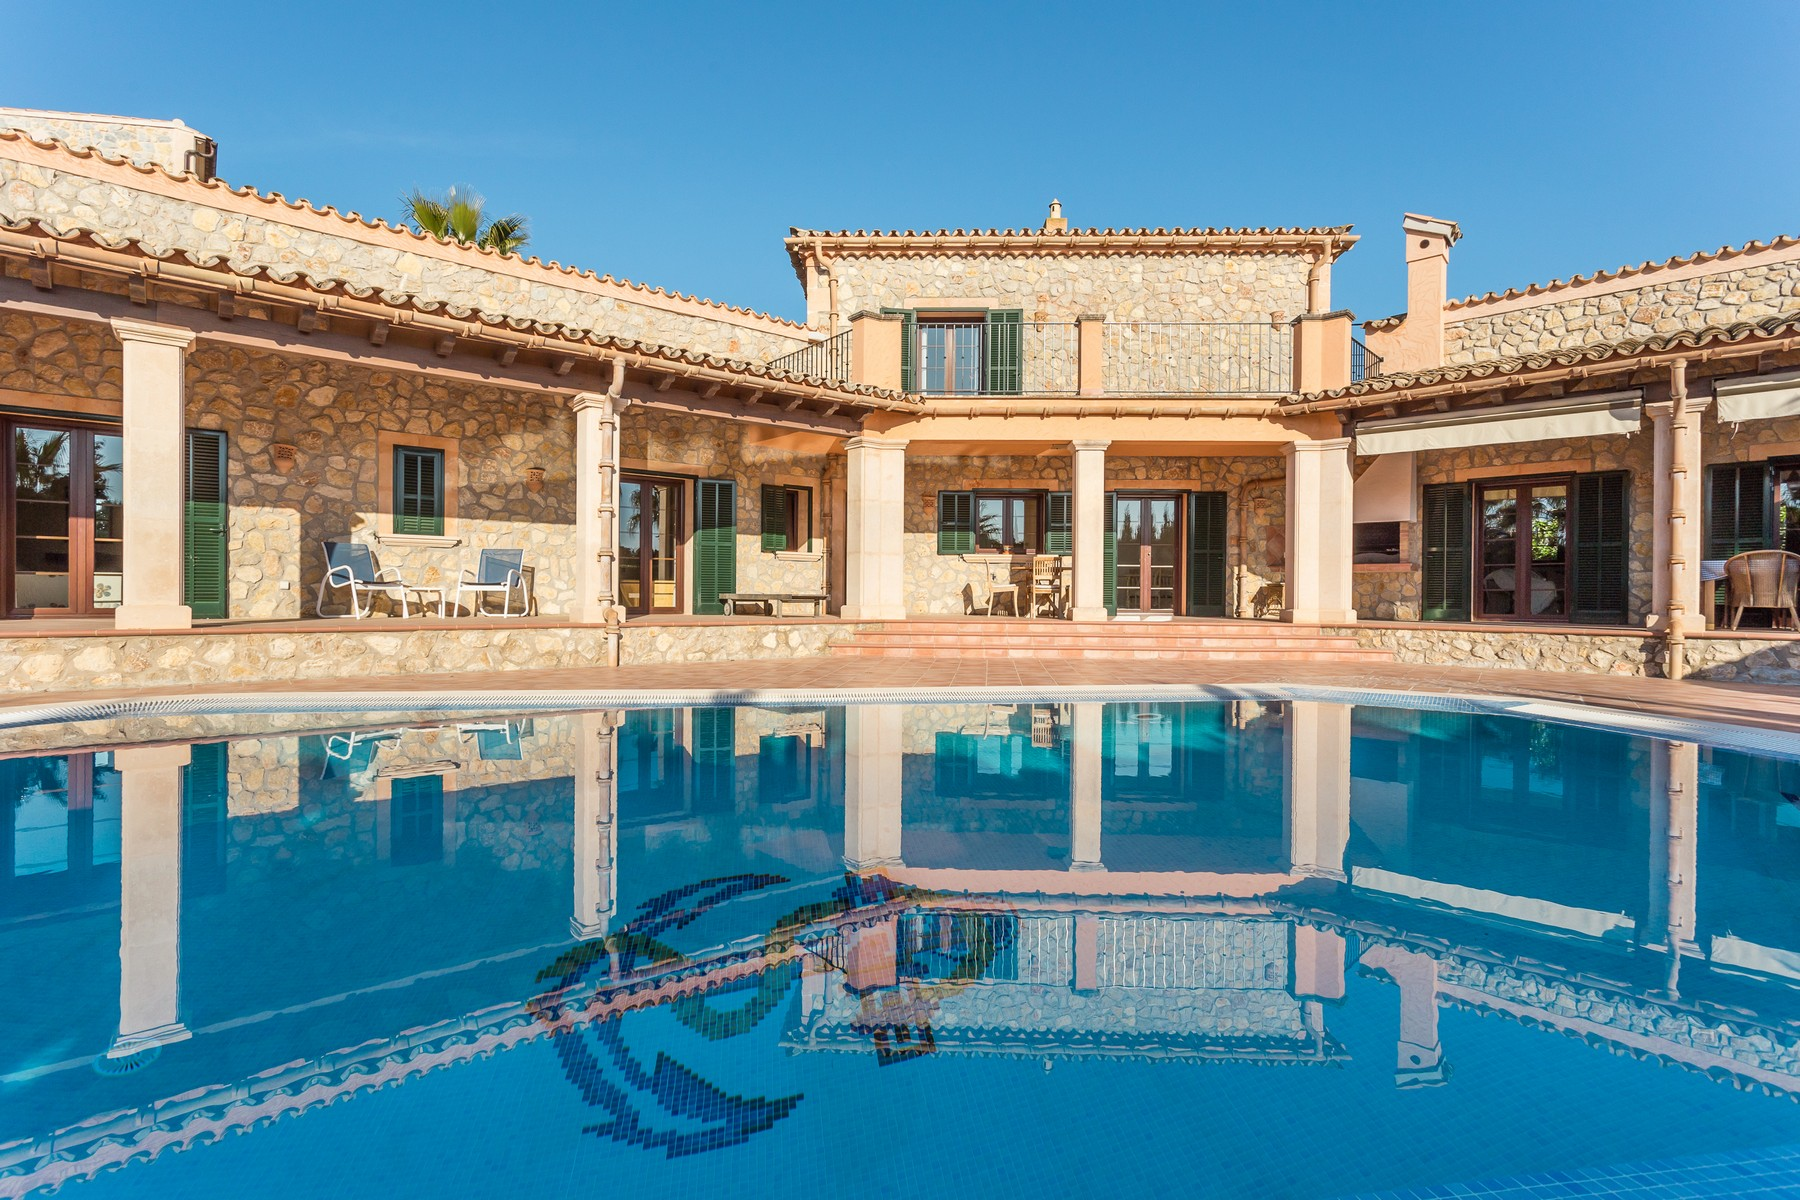 Single Family Home for Sale at Top Quality Rustic Style Villa With Stunning Views Calvia, Mallorca 07184 Spain